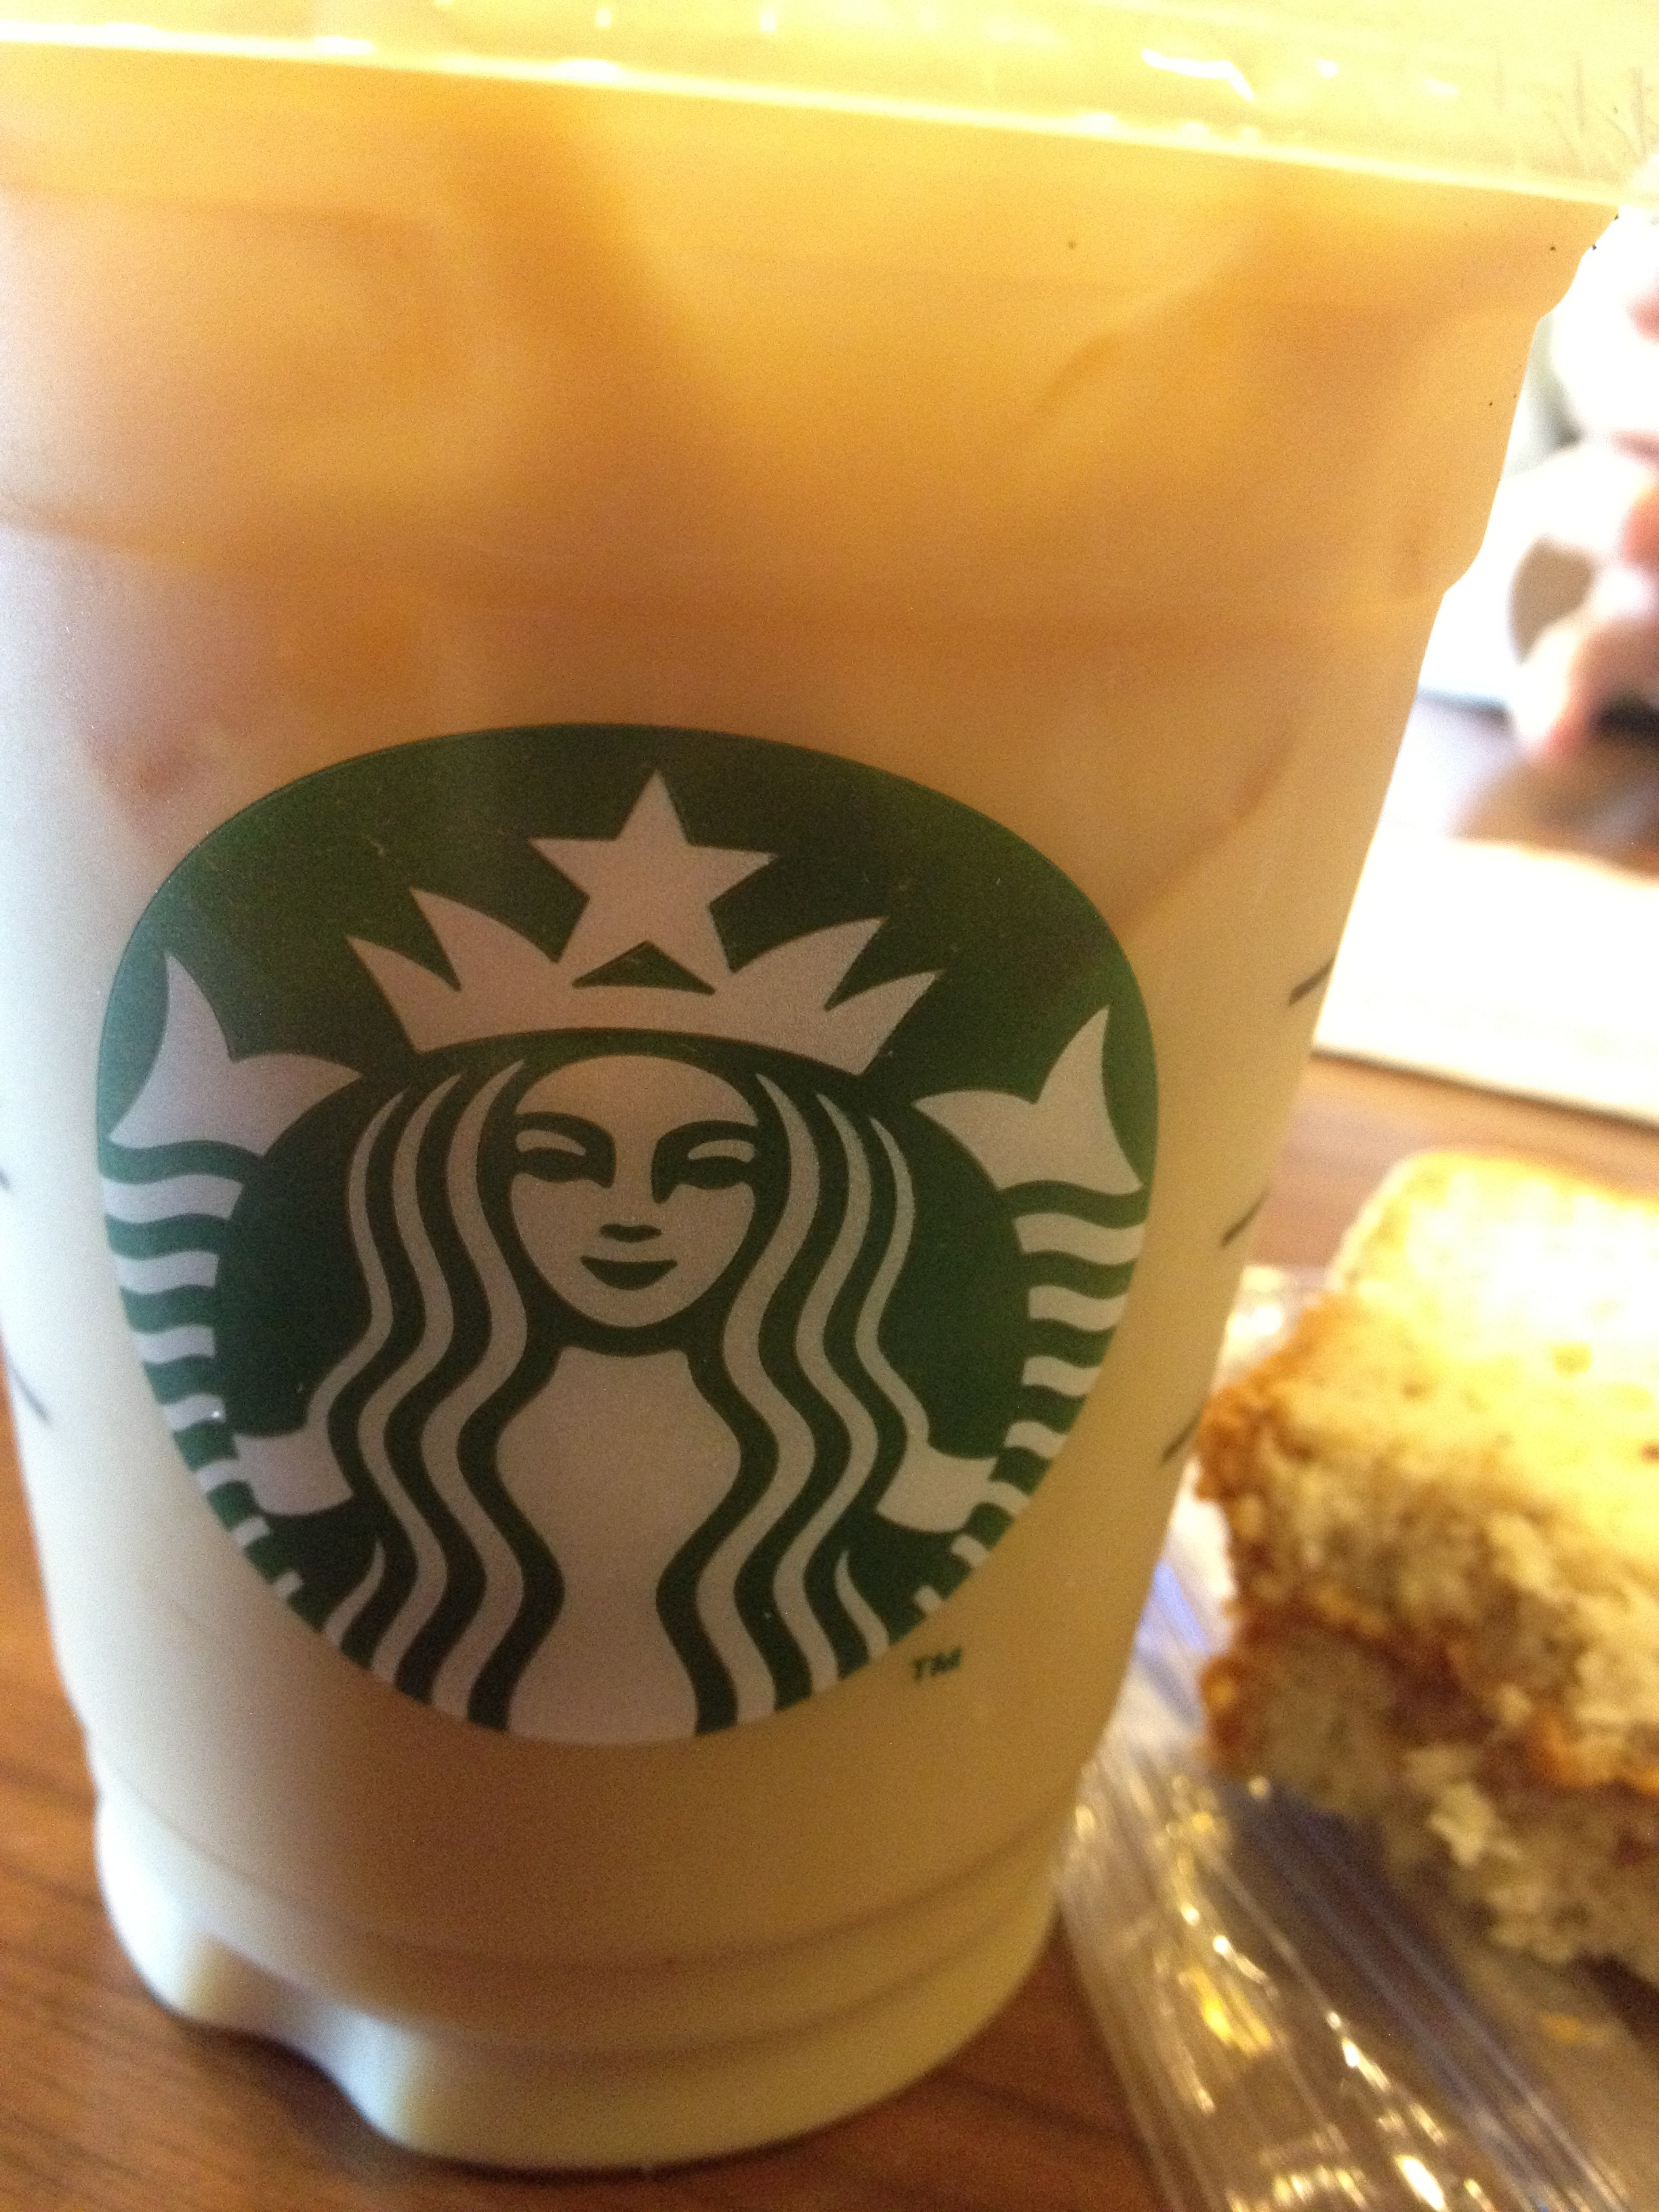 chai tea e1329945790807 How Much Does A Venti Iced Coffee Cost At Starbucks